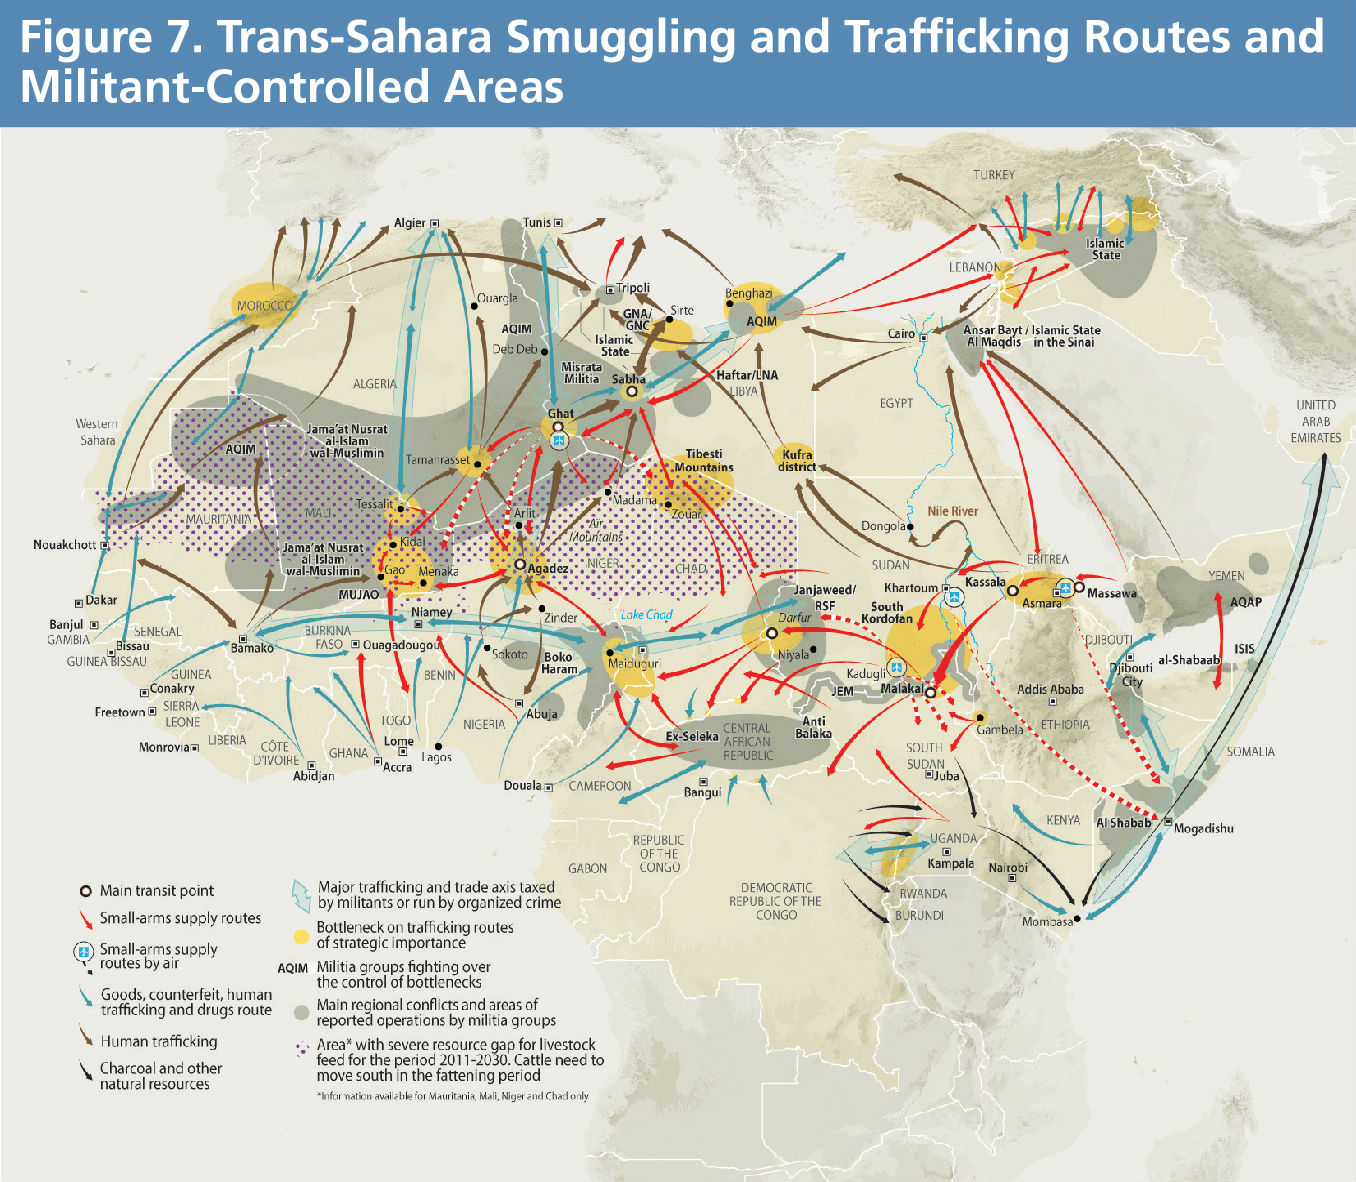 Shifting Borders Figure 7 - Trans-Sahara Smuggling and Trafficking Routes and Militant-Controlled Areas